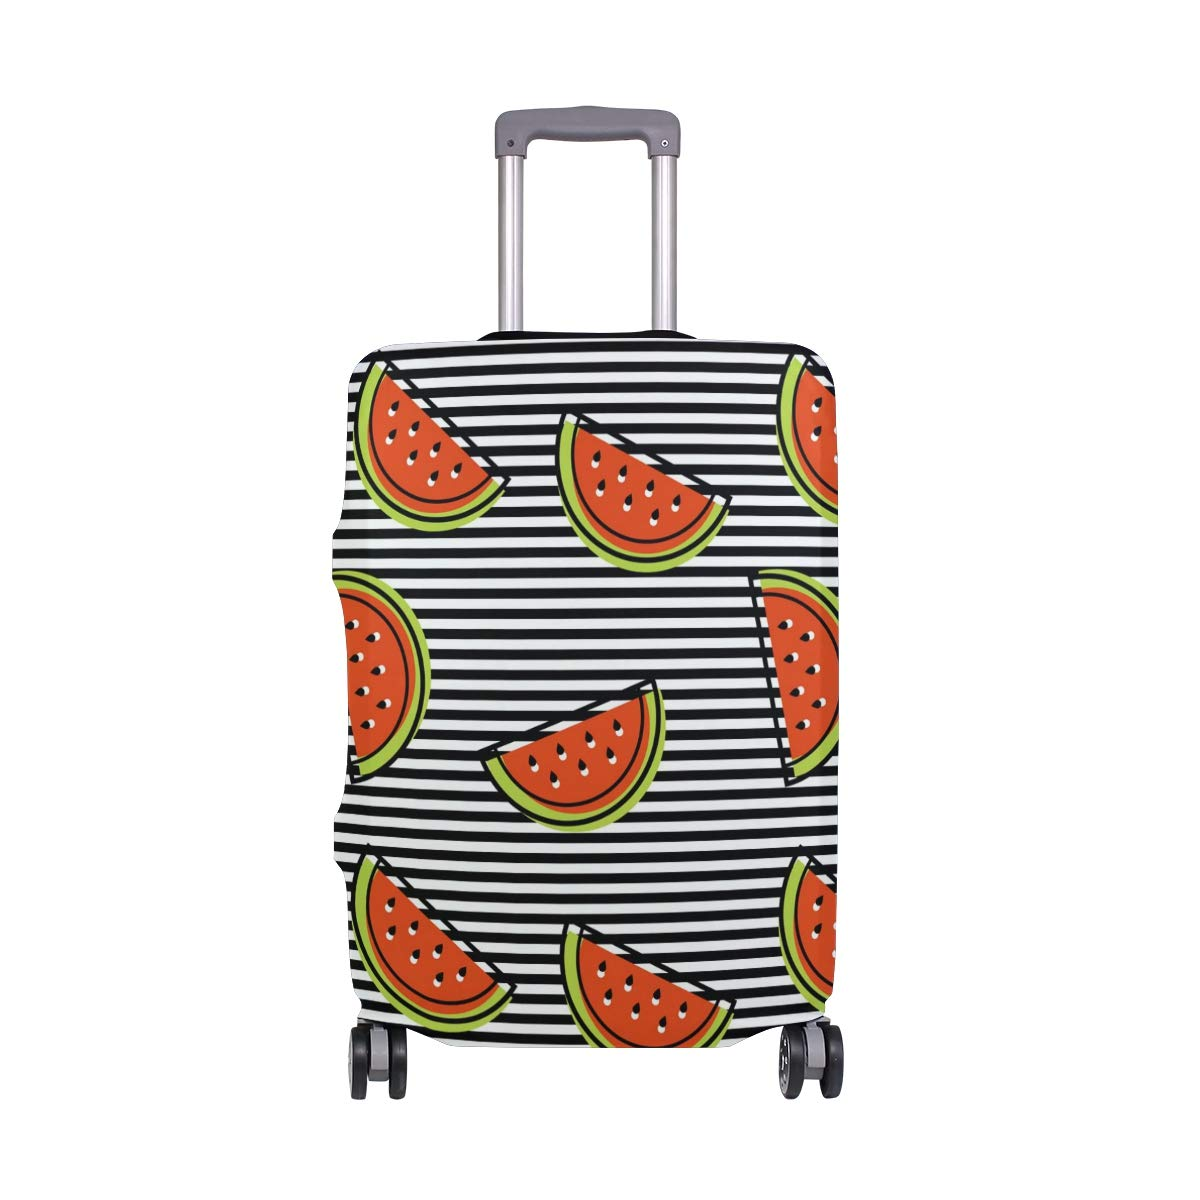 Baggage Covers Red Summer Watermelon Black Stripes Washable Protective Case